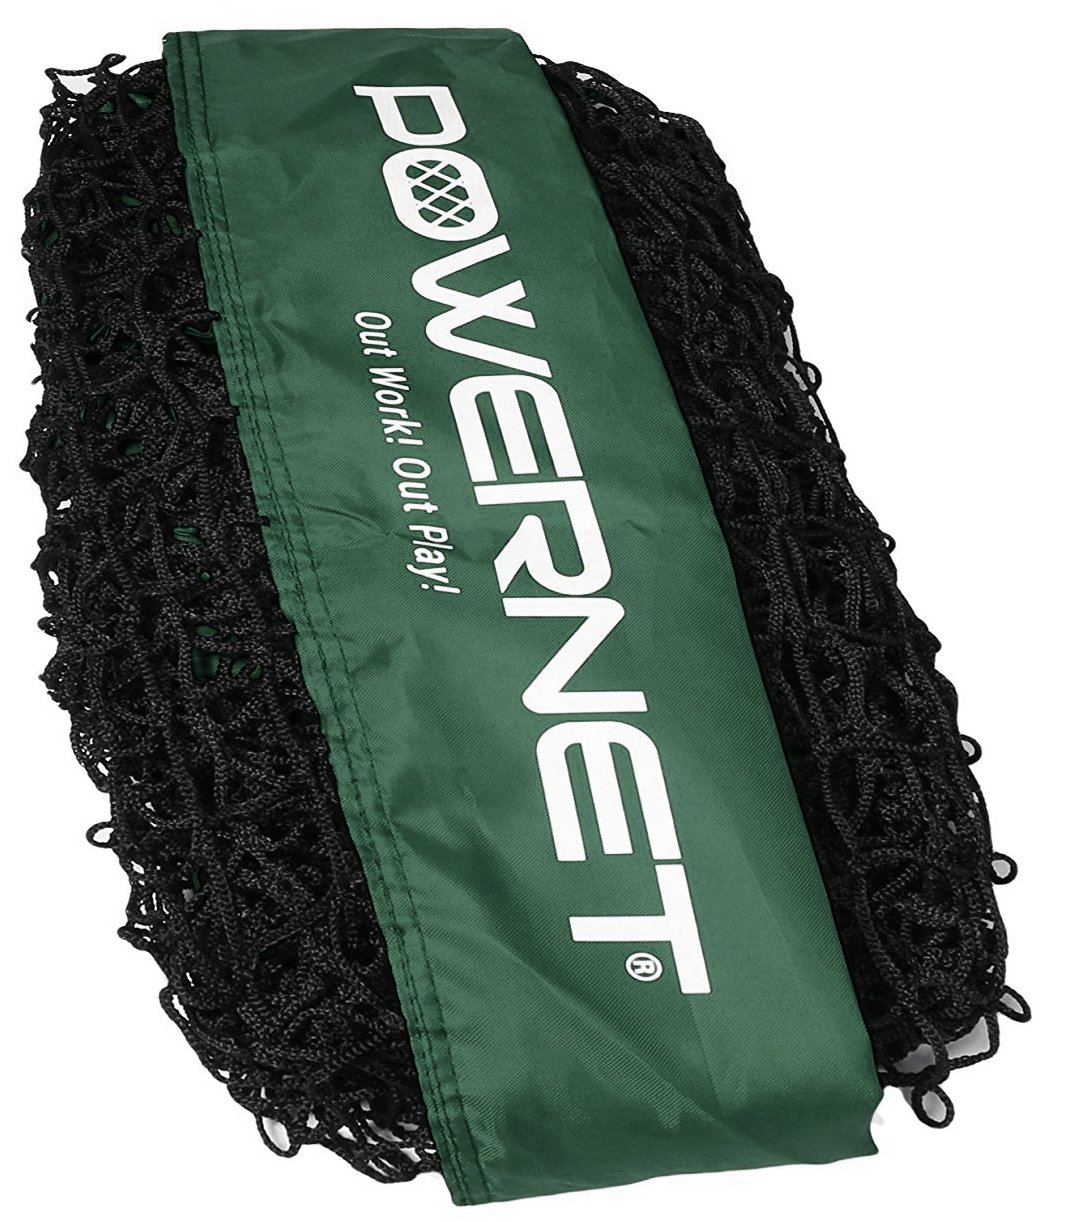 PowerNet Team Color Nets Baseball and Softball 7x7 Bow Style (NET ONLY) Replacement | Heavy Duty Knotless | Durable PU Coated Polyester | Double Stitched Seams for Extra Strength (Green) by PowerNet